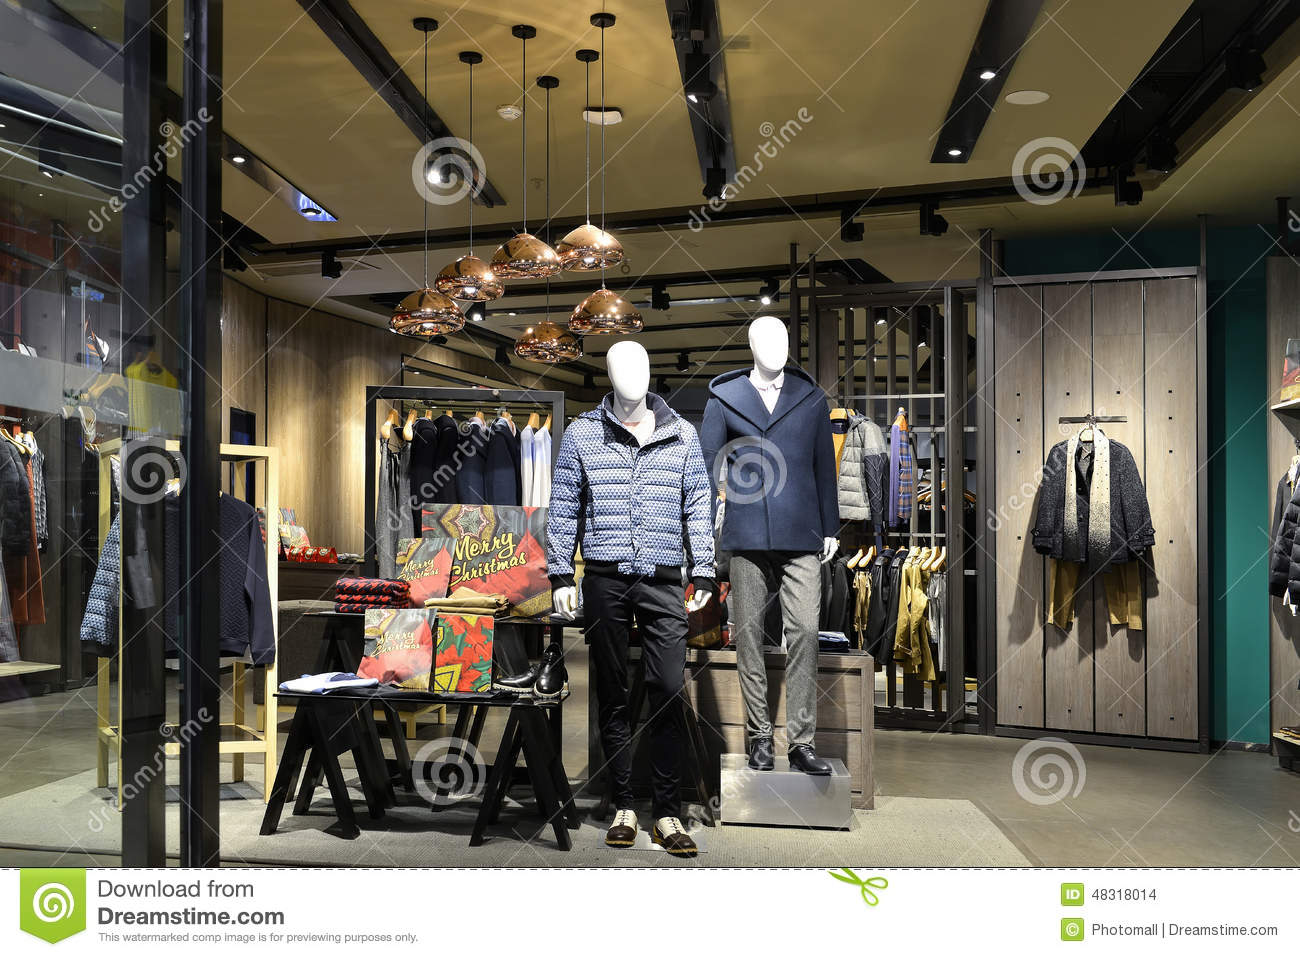 Men's Clothing Store Stock Photo - Image: 48318014